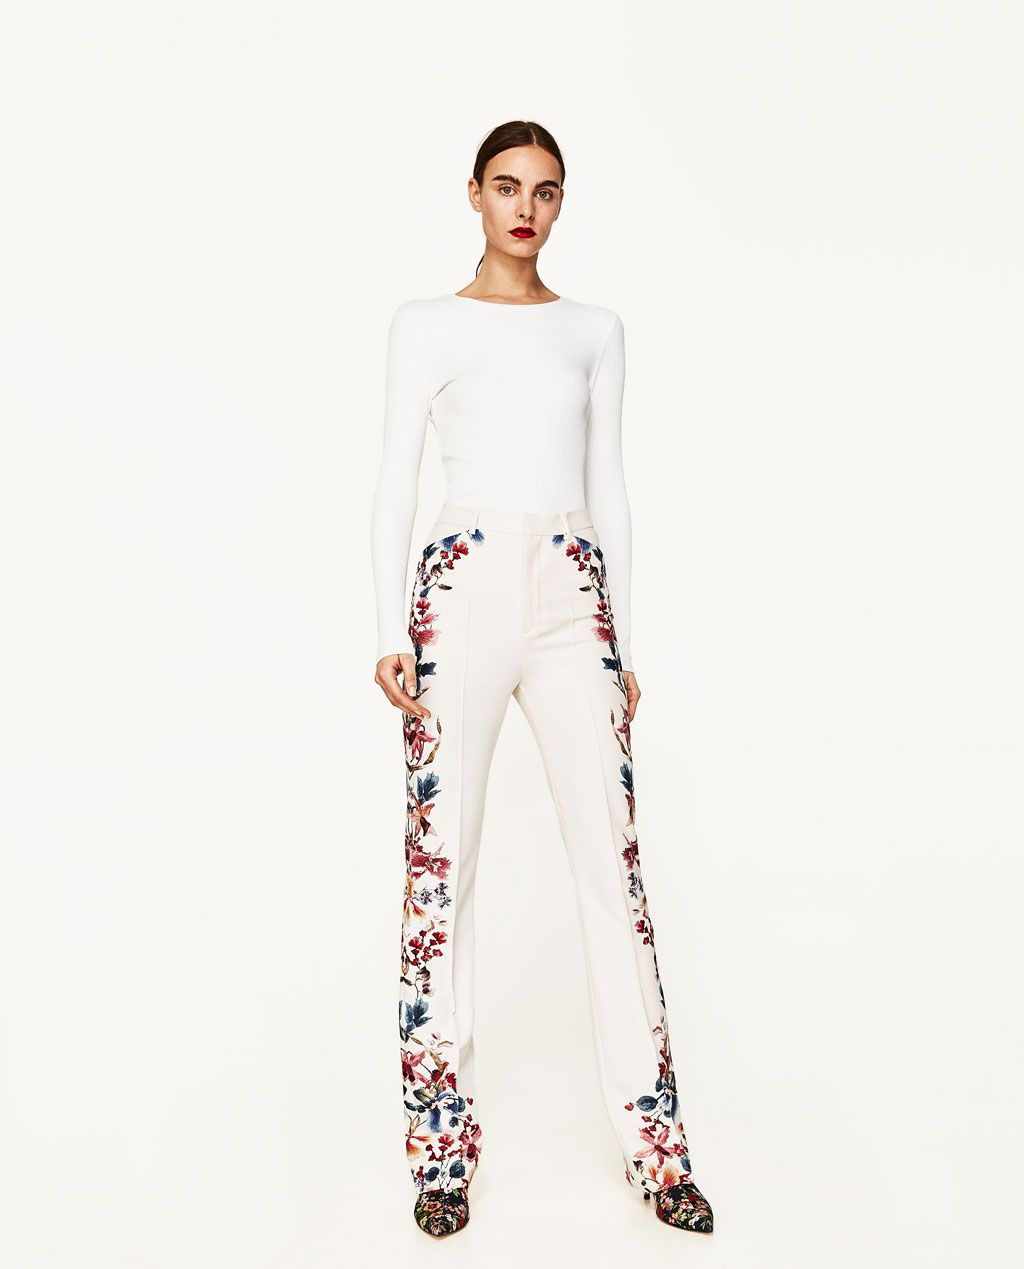 40404af246 SIDE PRINTED FLARED TROUSERS-SUMMER BREEZE-WOMAN-EDITORIALS | ZARA ...